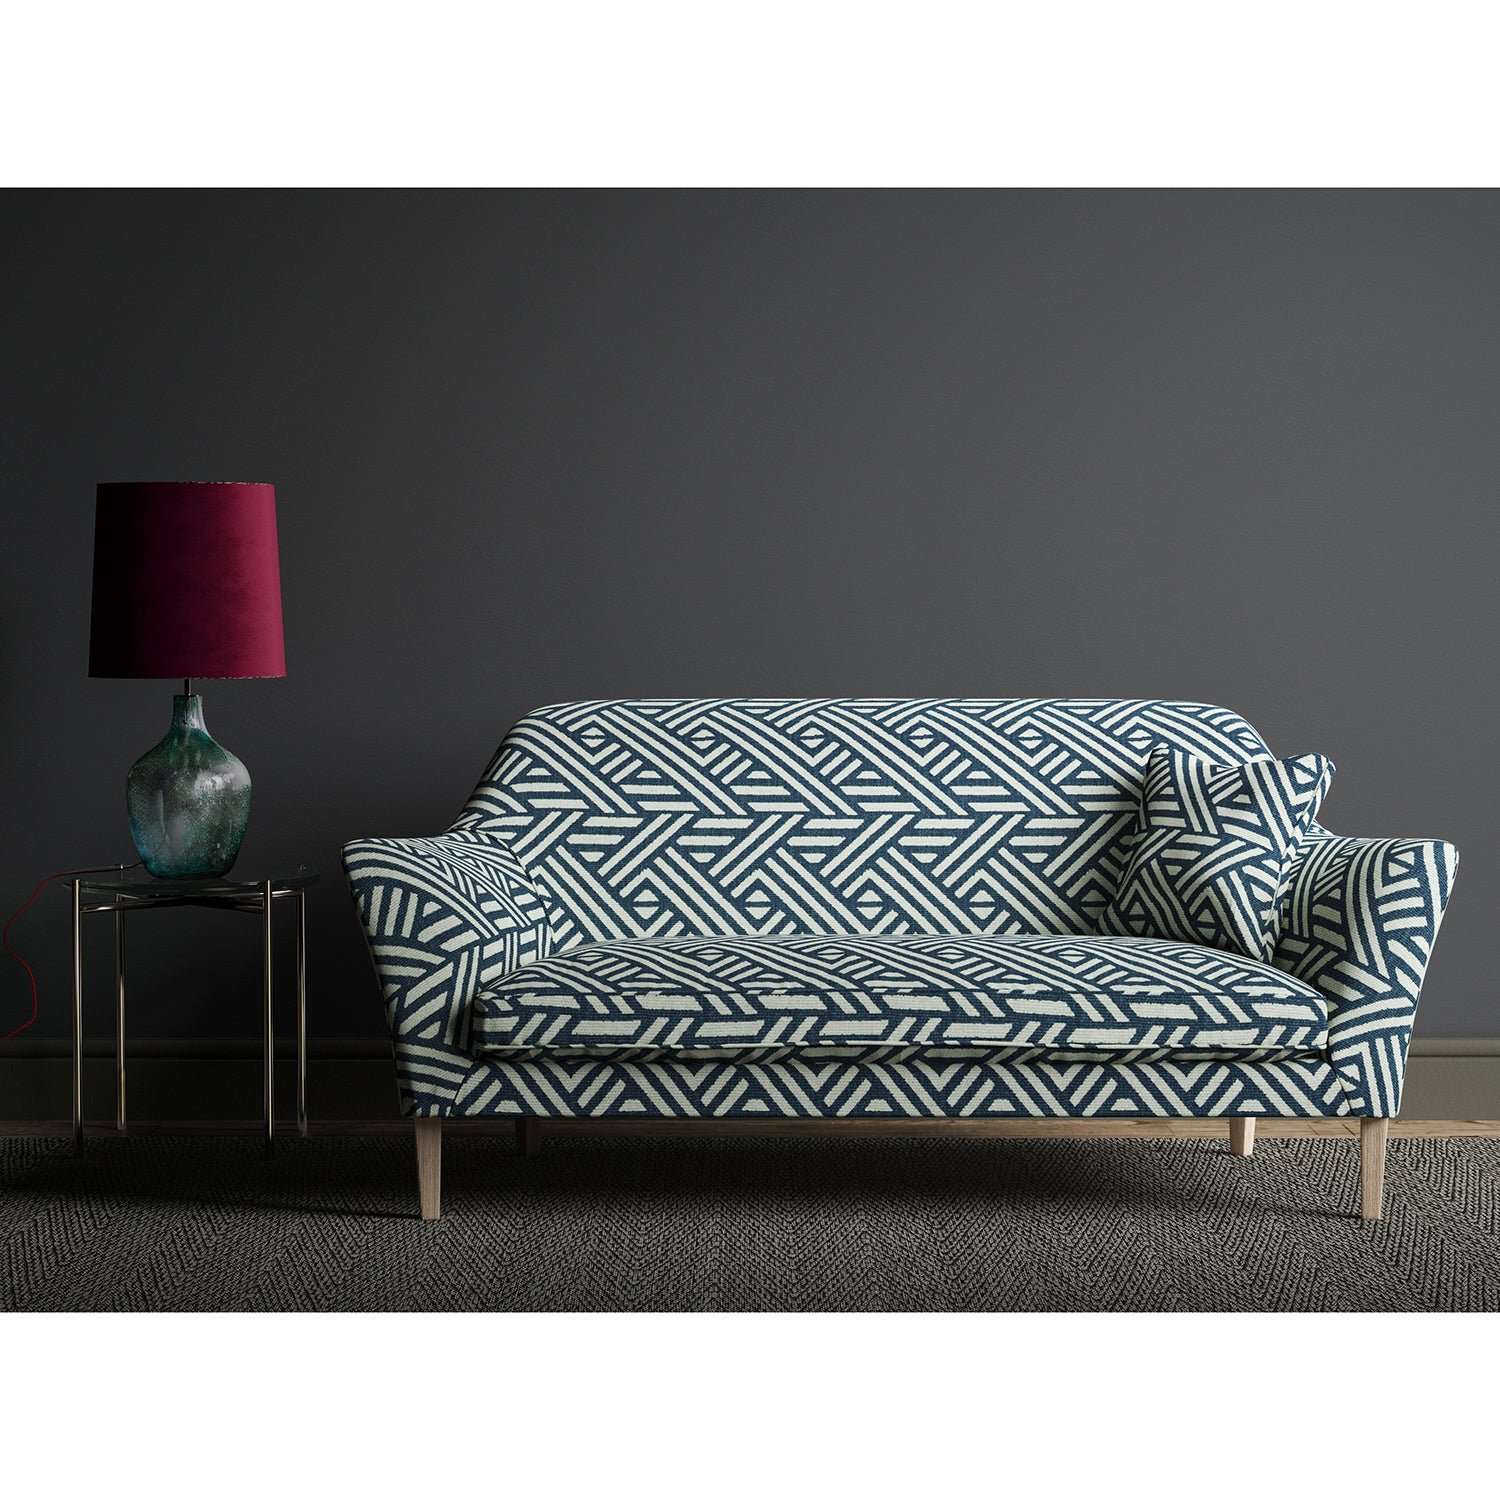 Sofa upholstered in a blue and white large scale geometric print